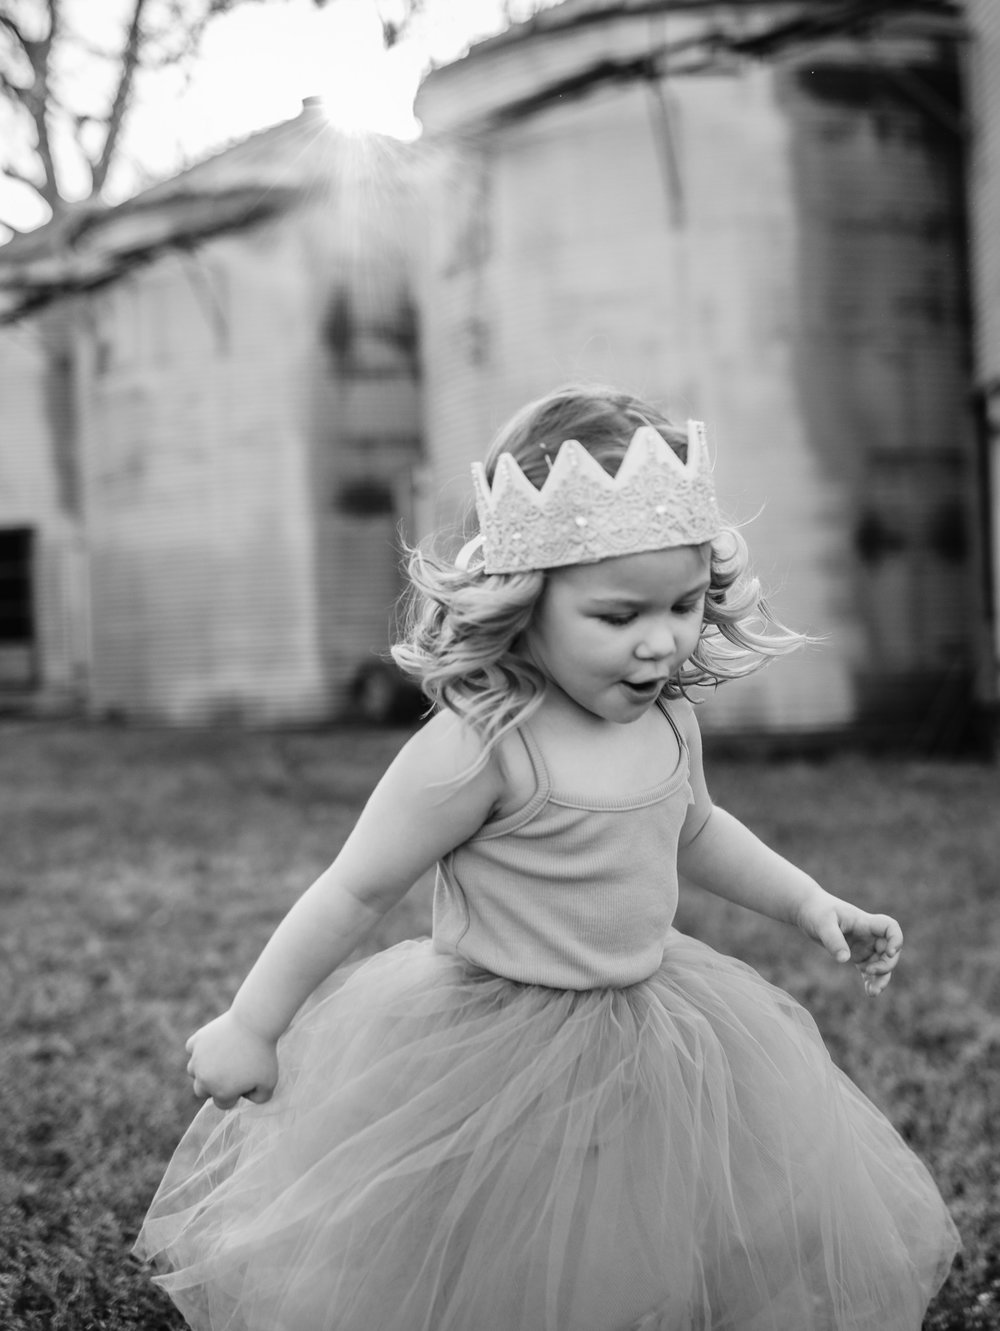 Black and White Young Girl in Crown